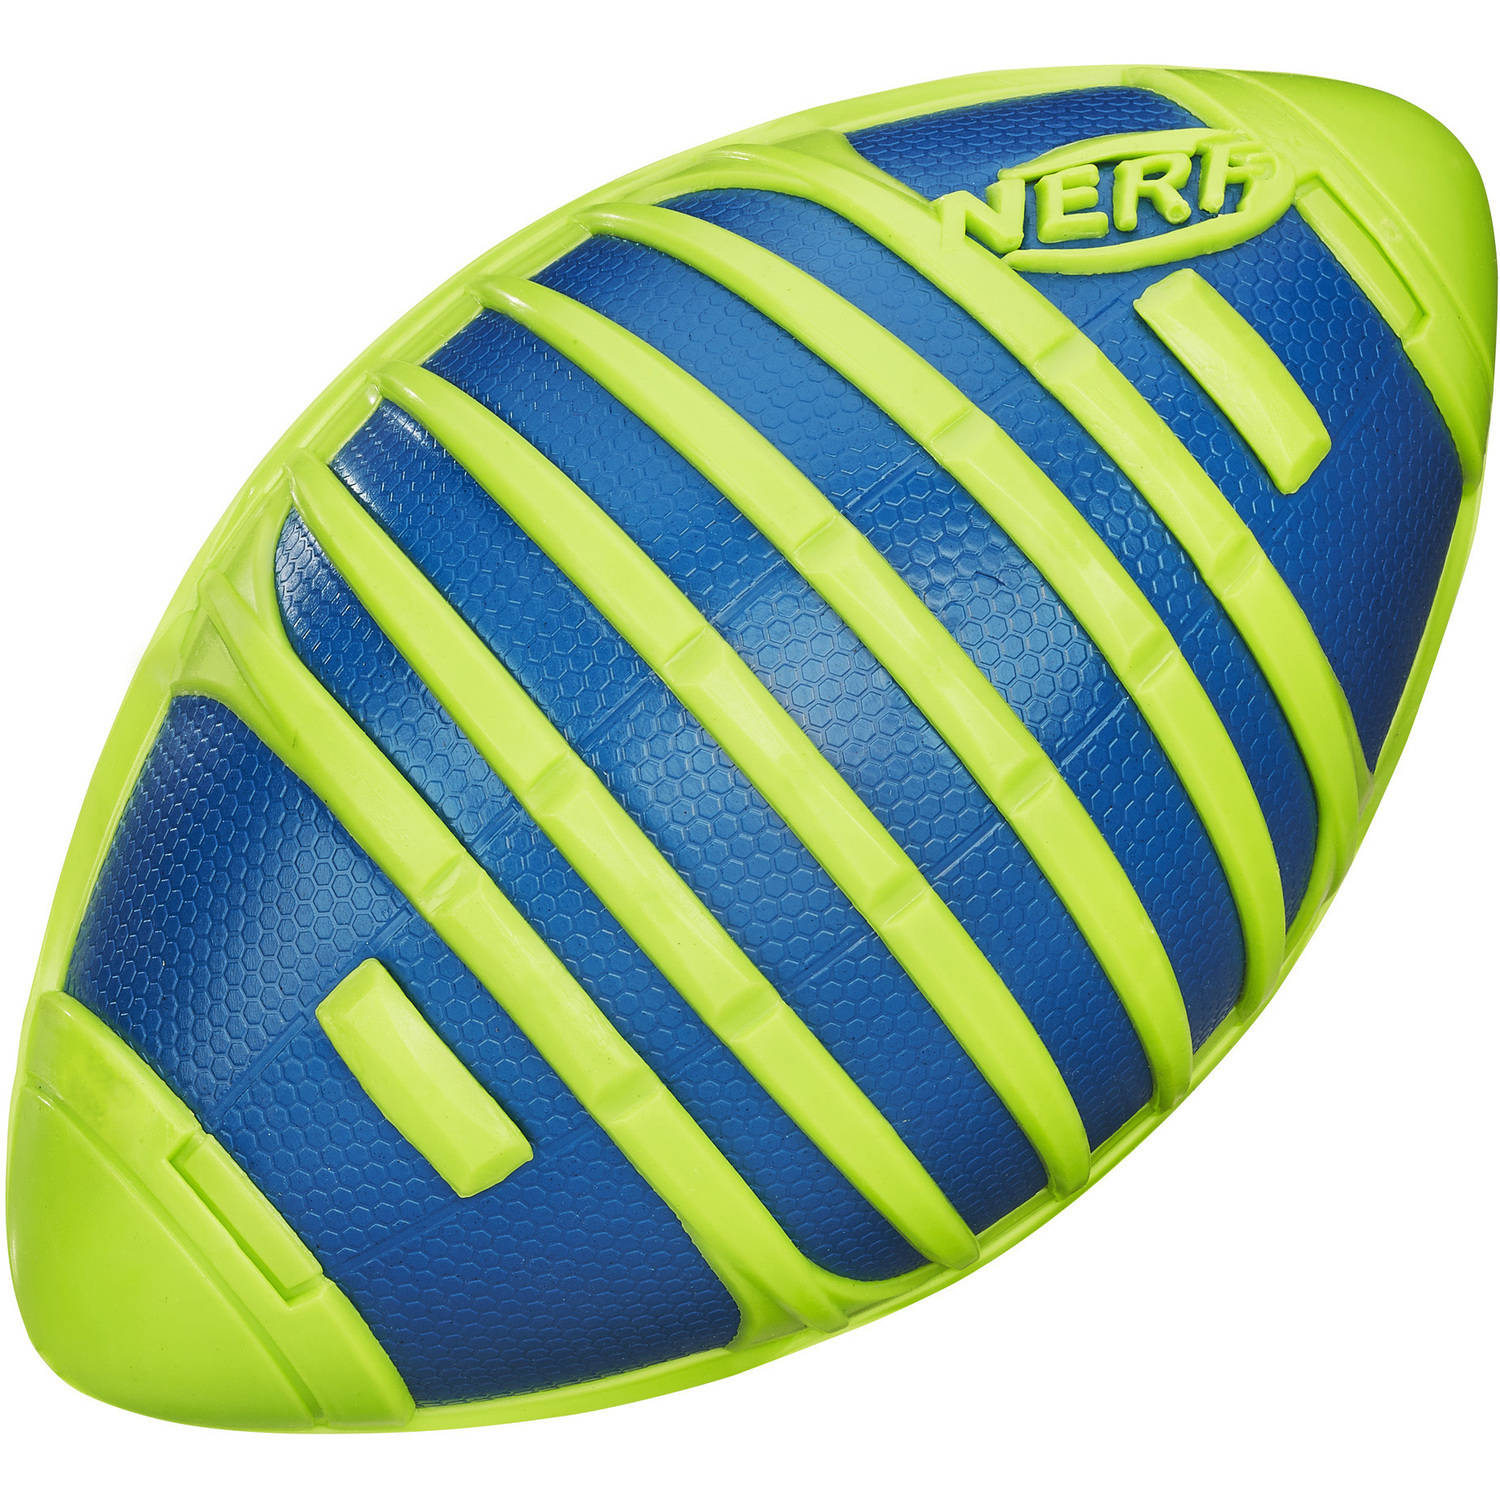 Nerf Sports Weather Blitz Football, Green by Hasbro